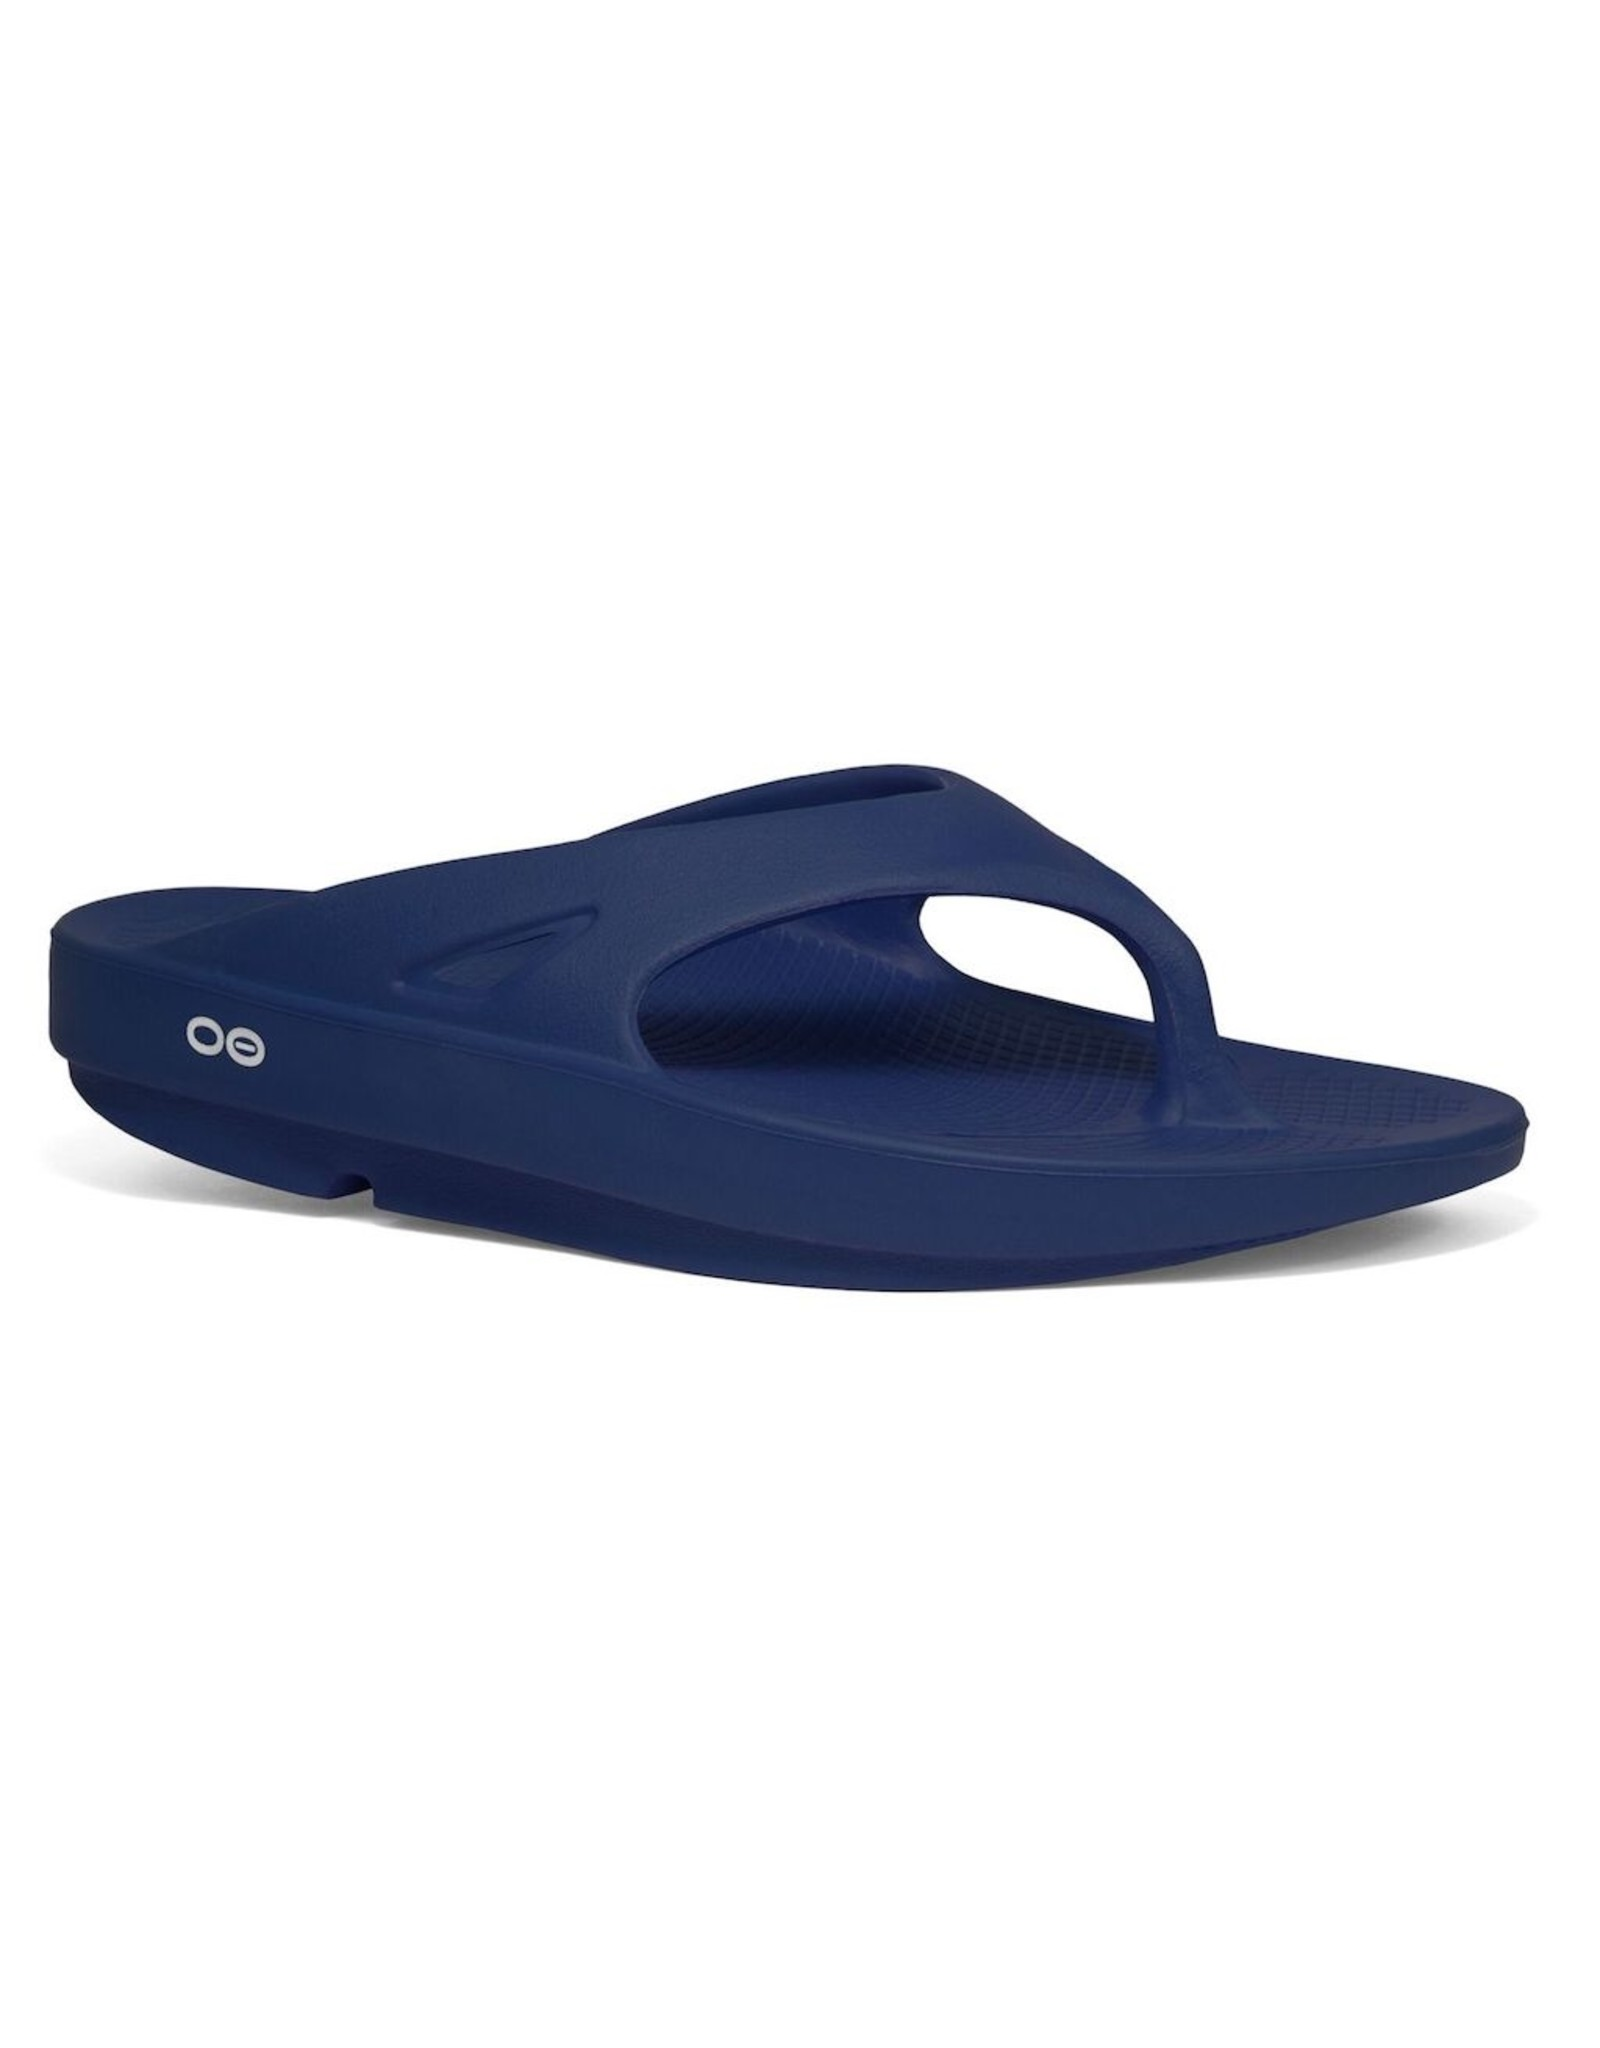 OOFOS Oofos Thong Sandals